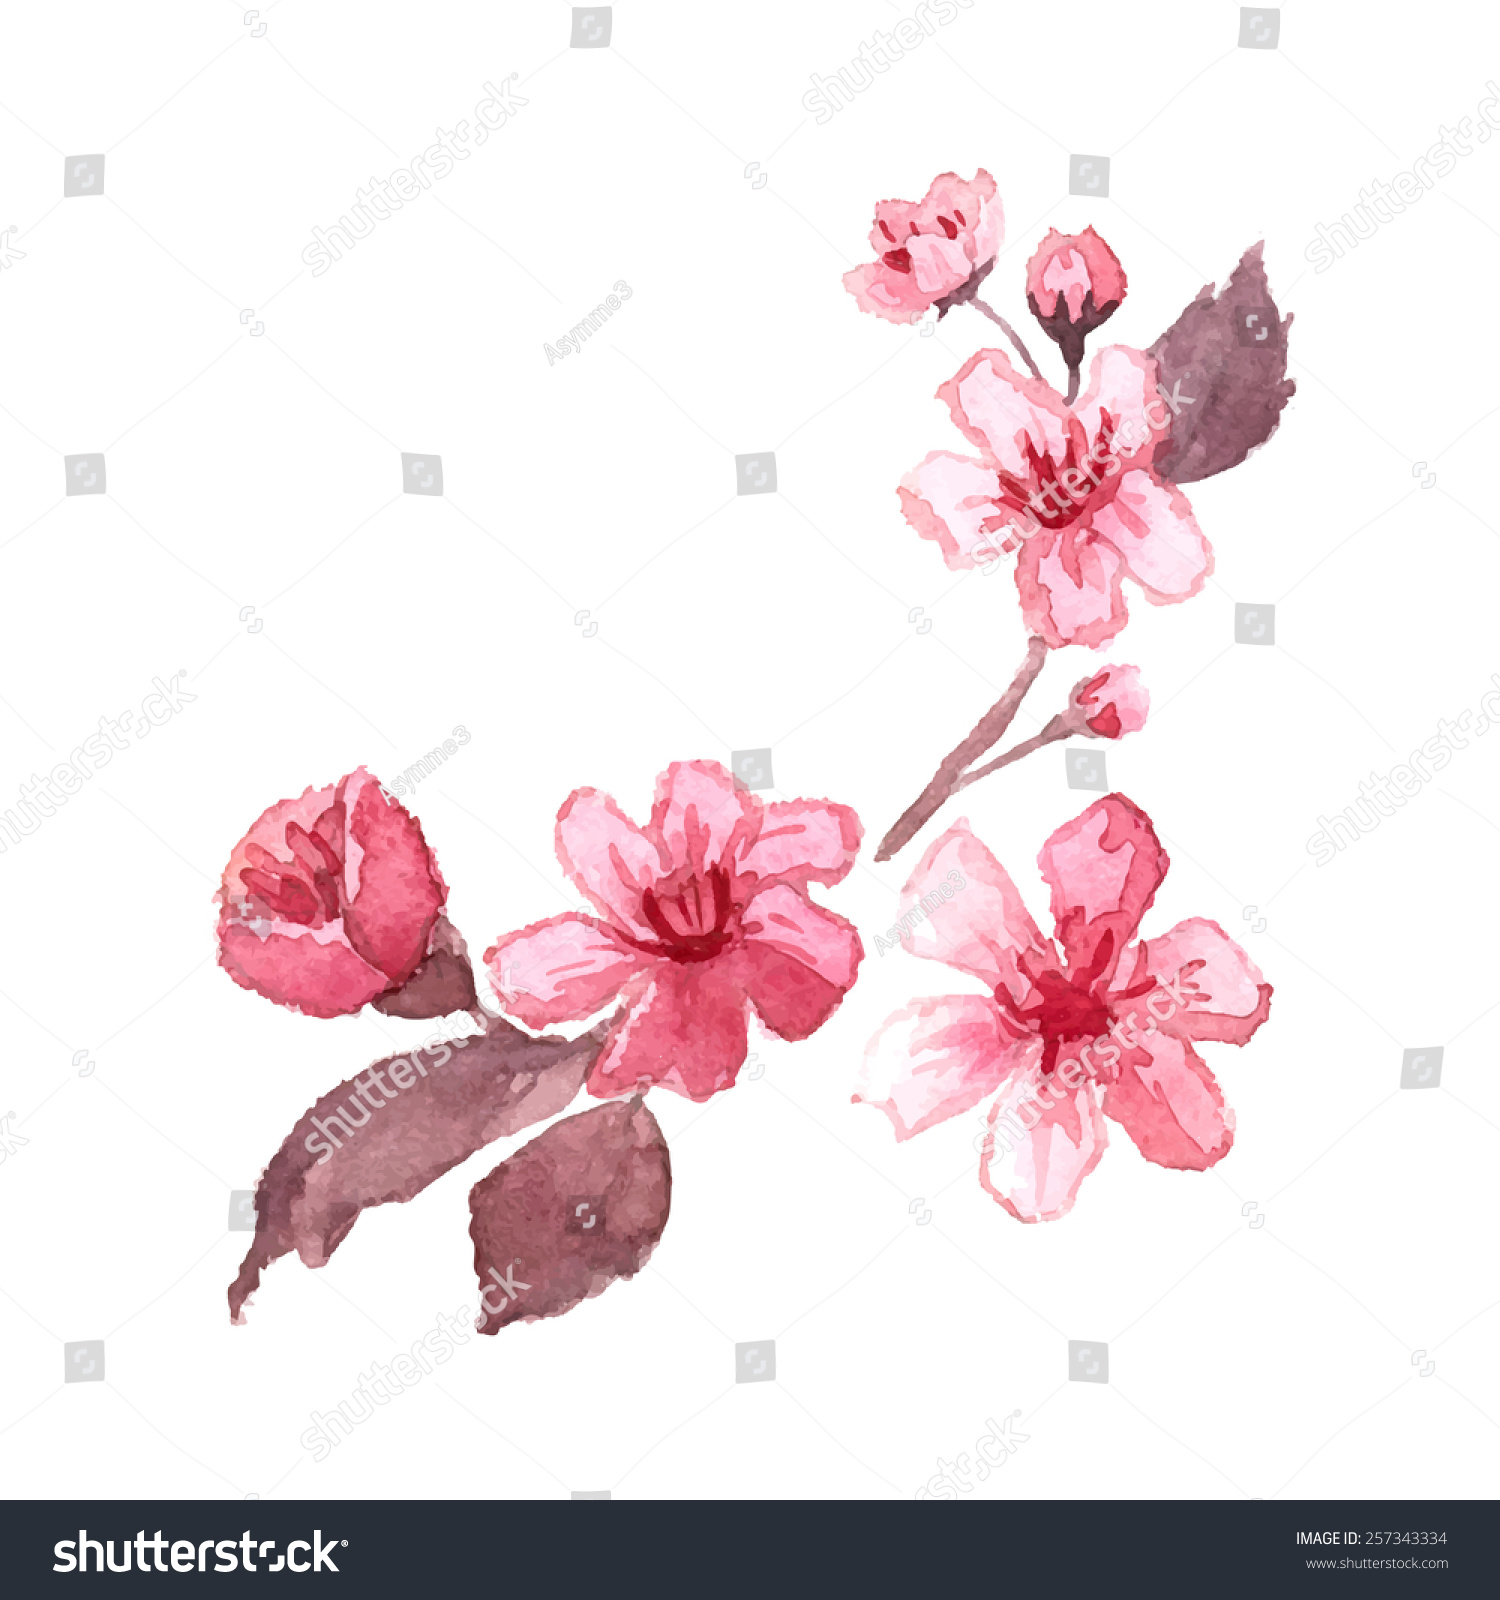 Watercolor Blossom Cherry Tree Branches Hand Stock Vector 257343334